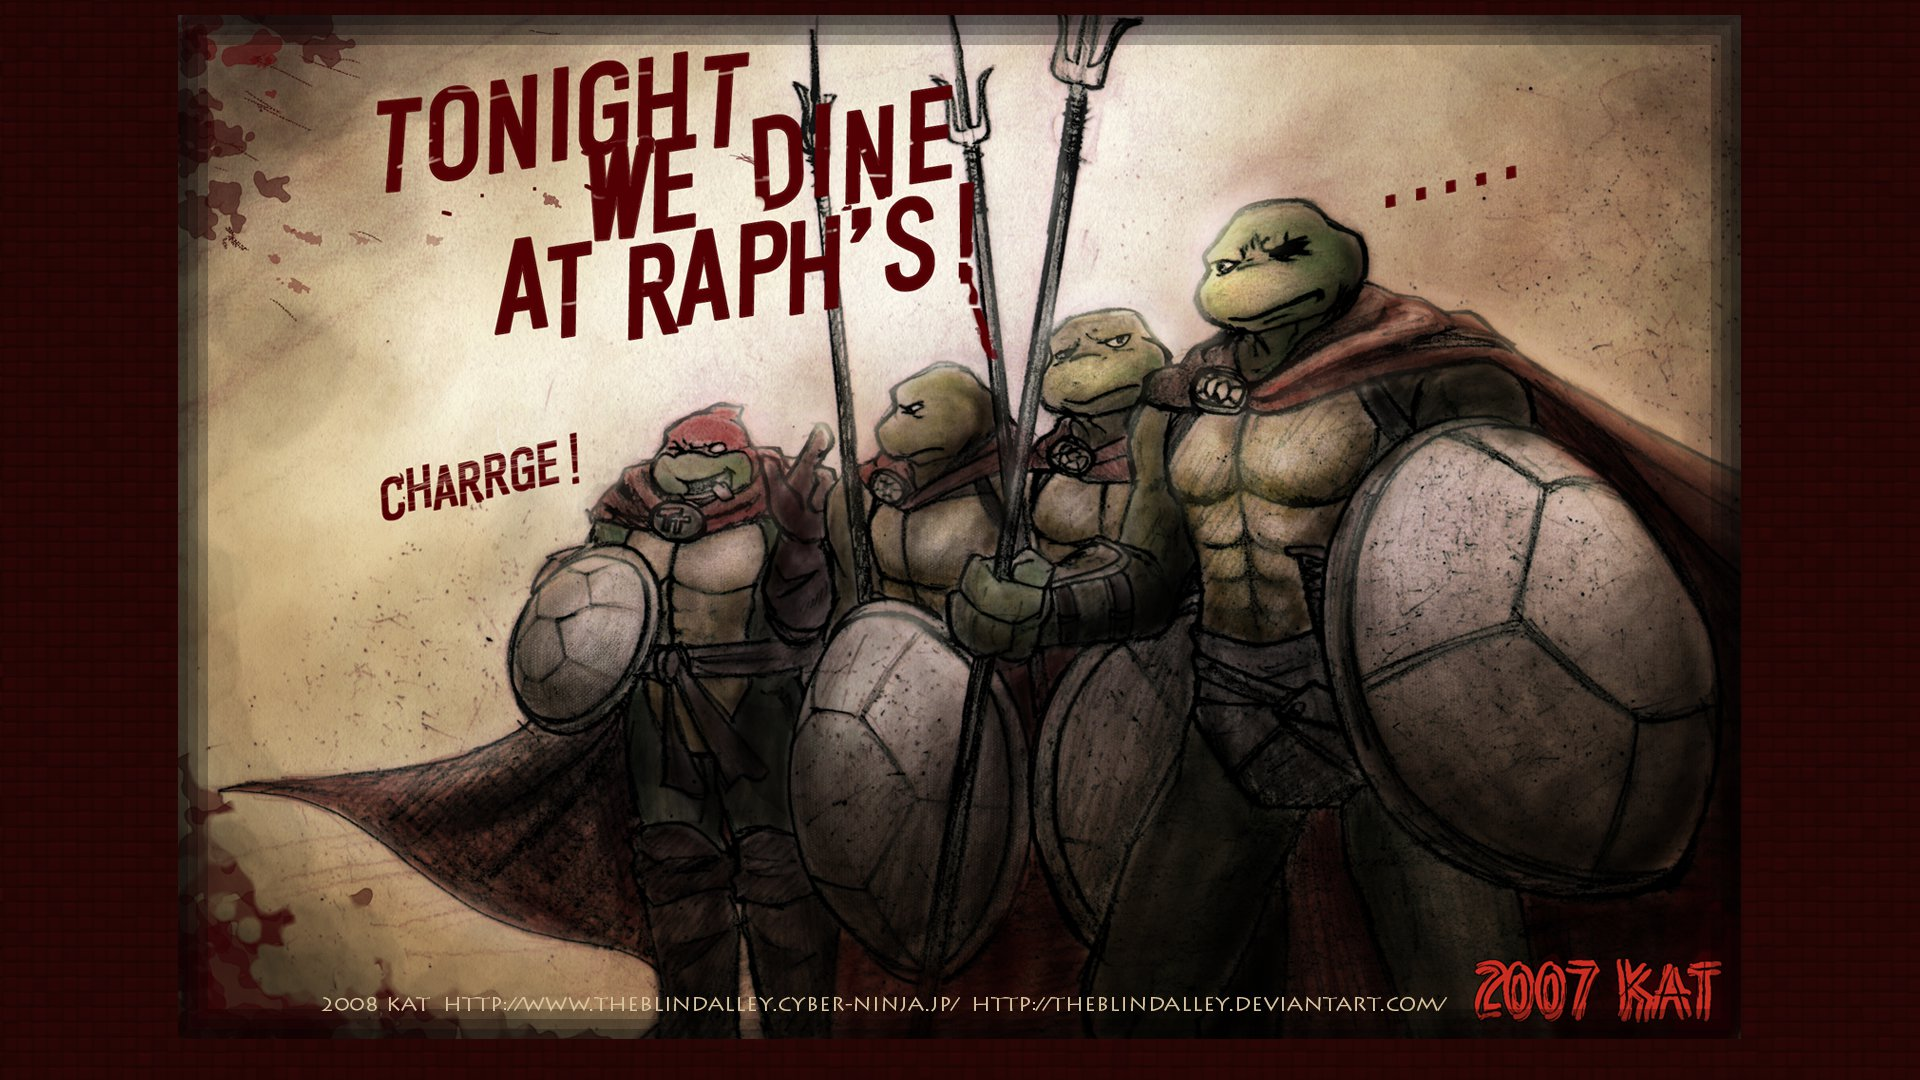 TMNT wallpaper HD 4 by theblindalley 1920x1080